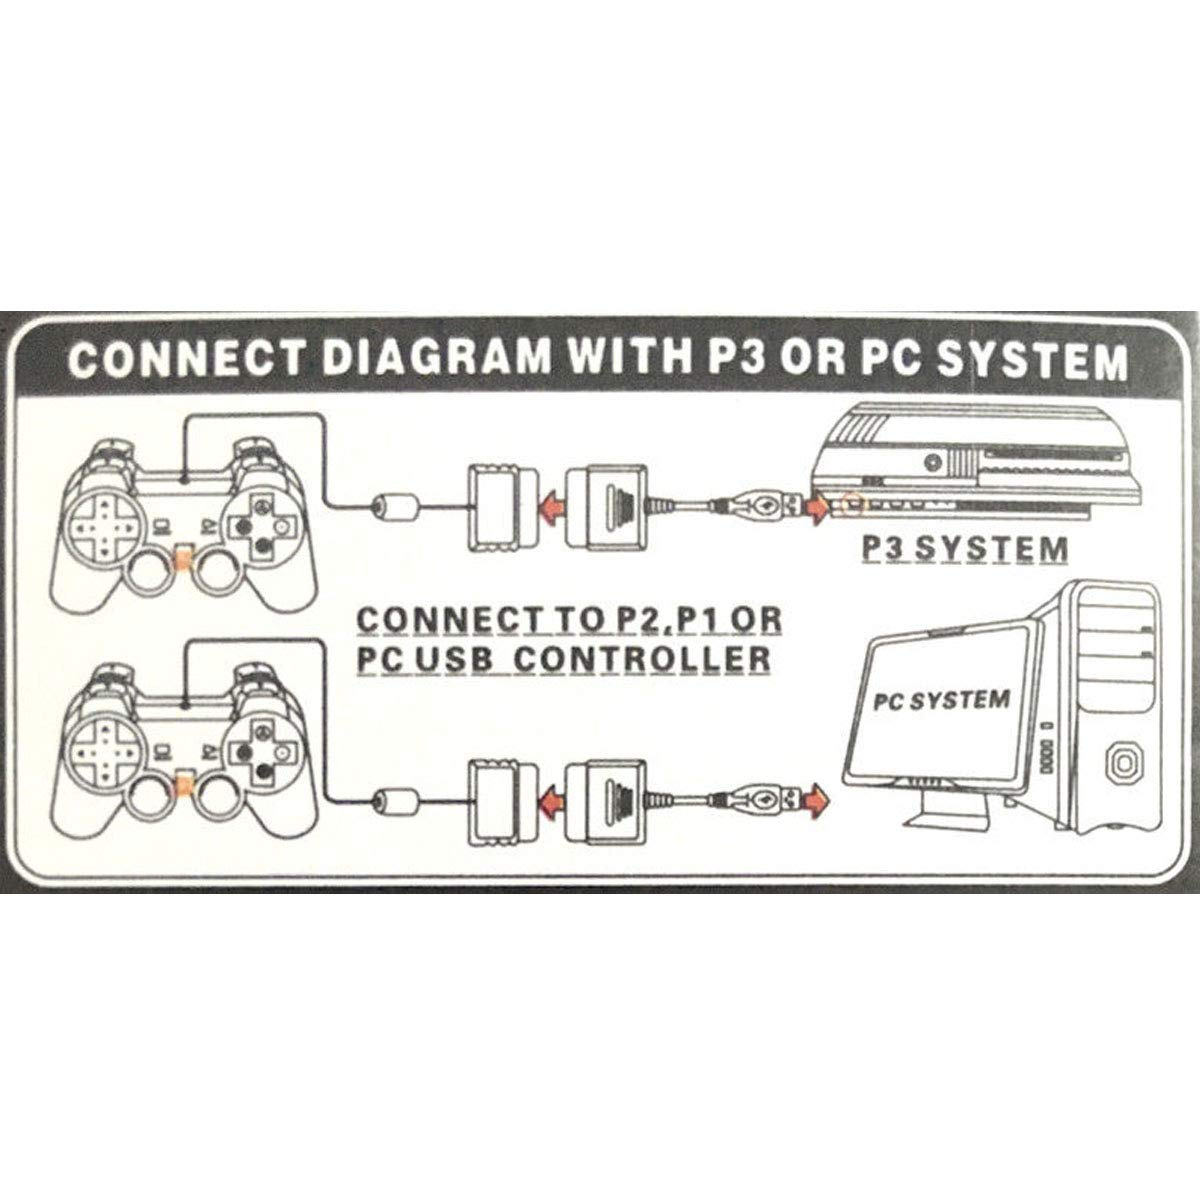 Finera USB 2.0 Games Controller Adapter Converter Cable, Compatible with Sony PS1 PS2 Playstation Dual shock 2 Joypad Gamepad to PS3 PC Game